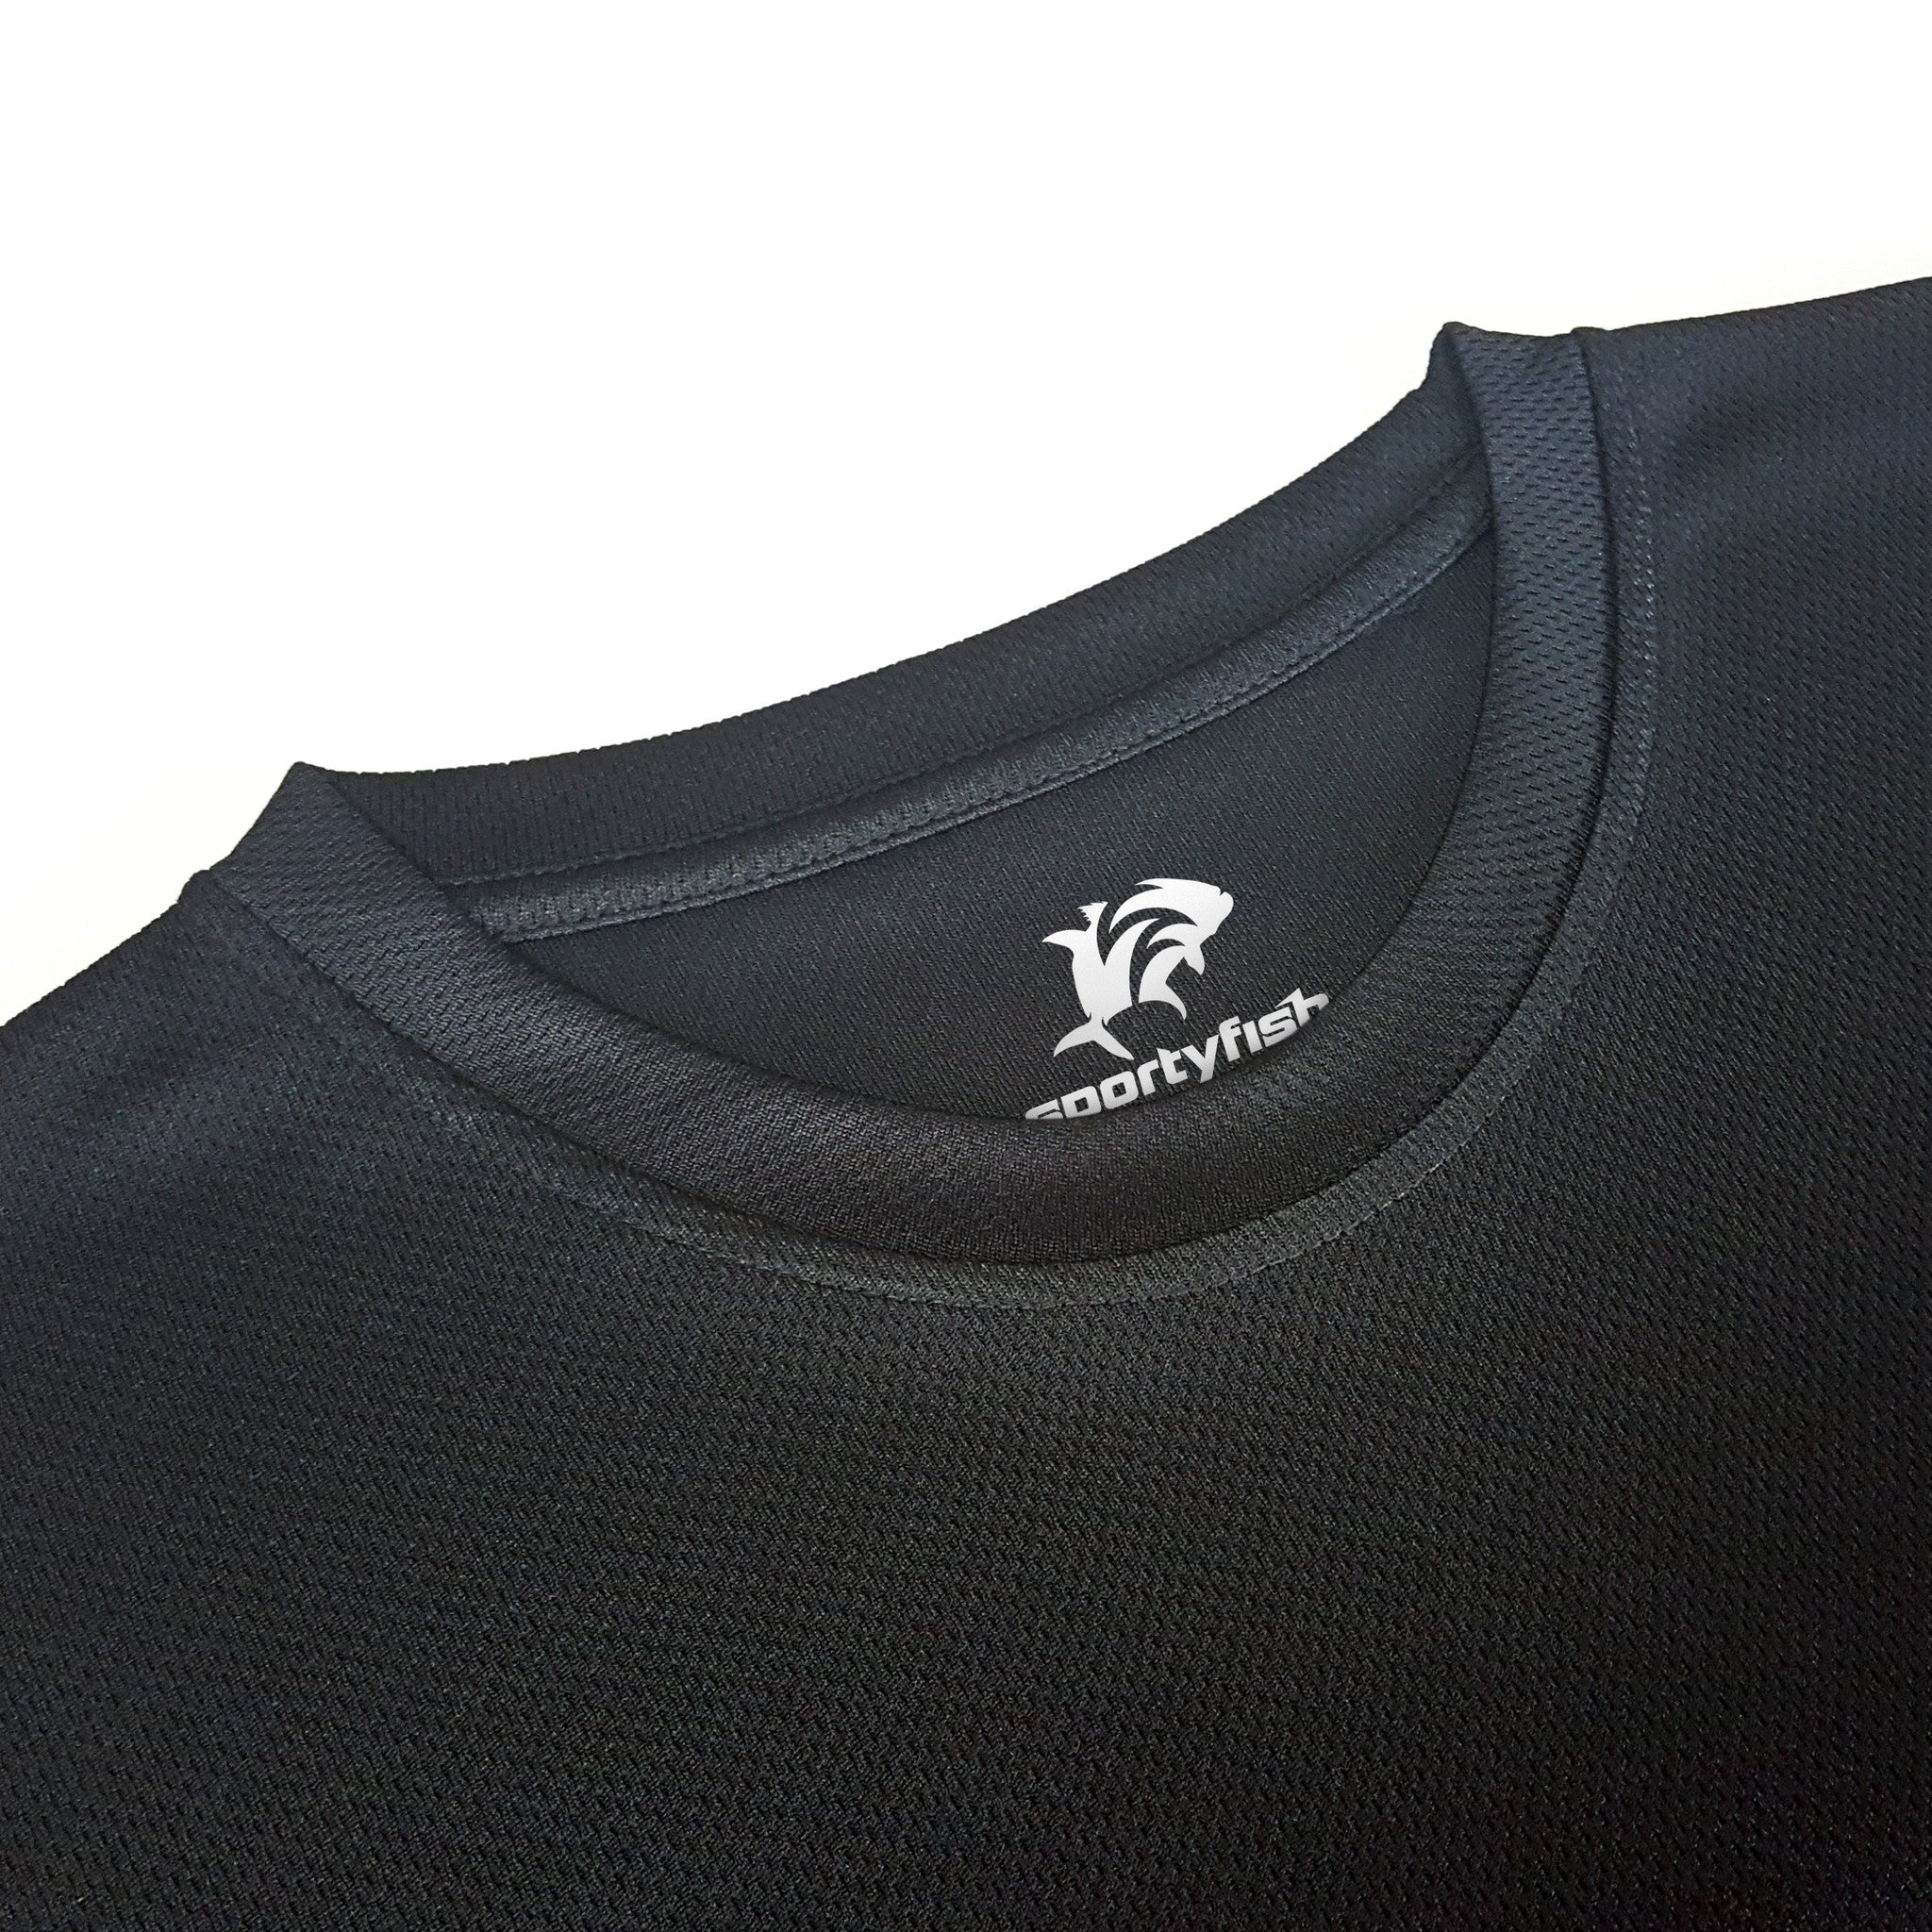 SportyFish Black Series black Long-sleeves t-shirt: Peacock Bass close-up view 3